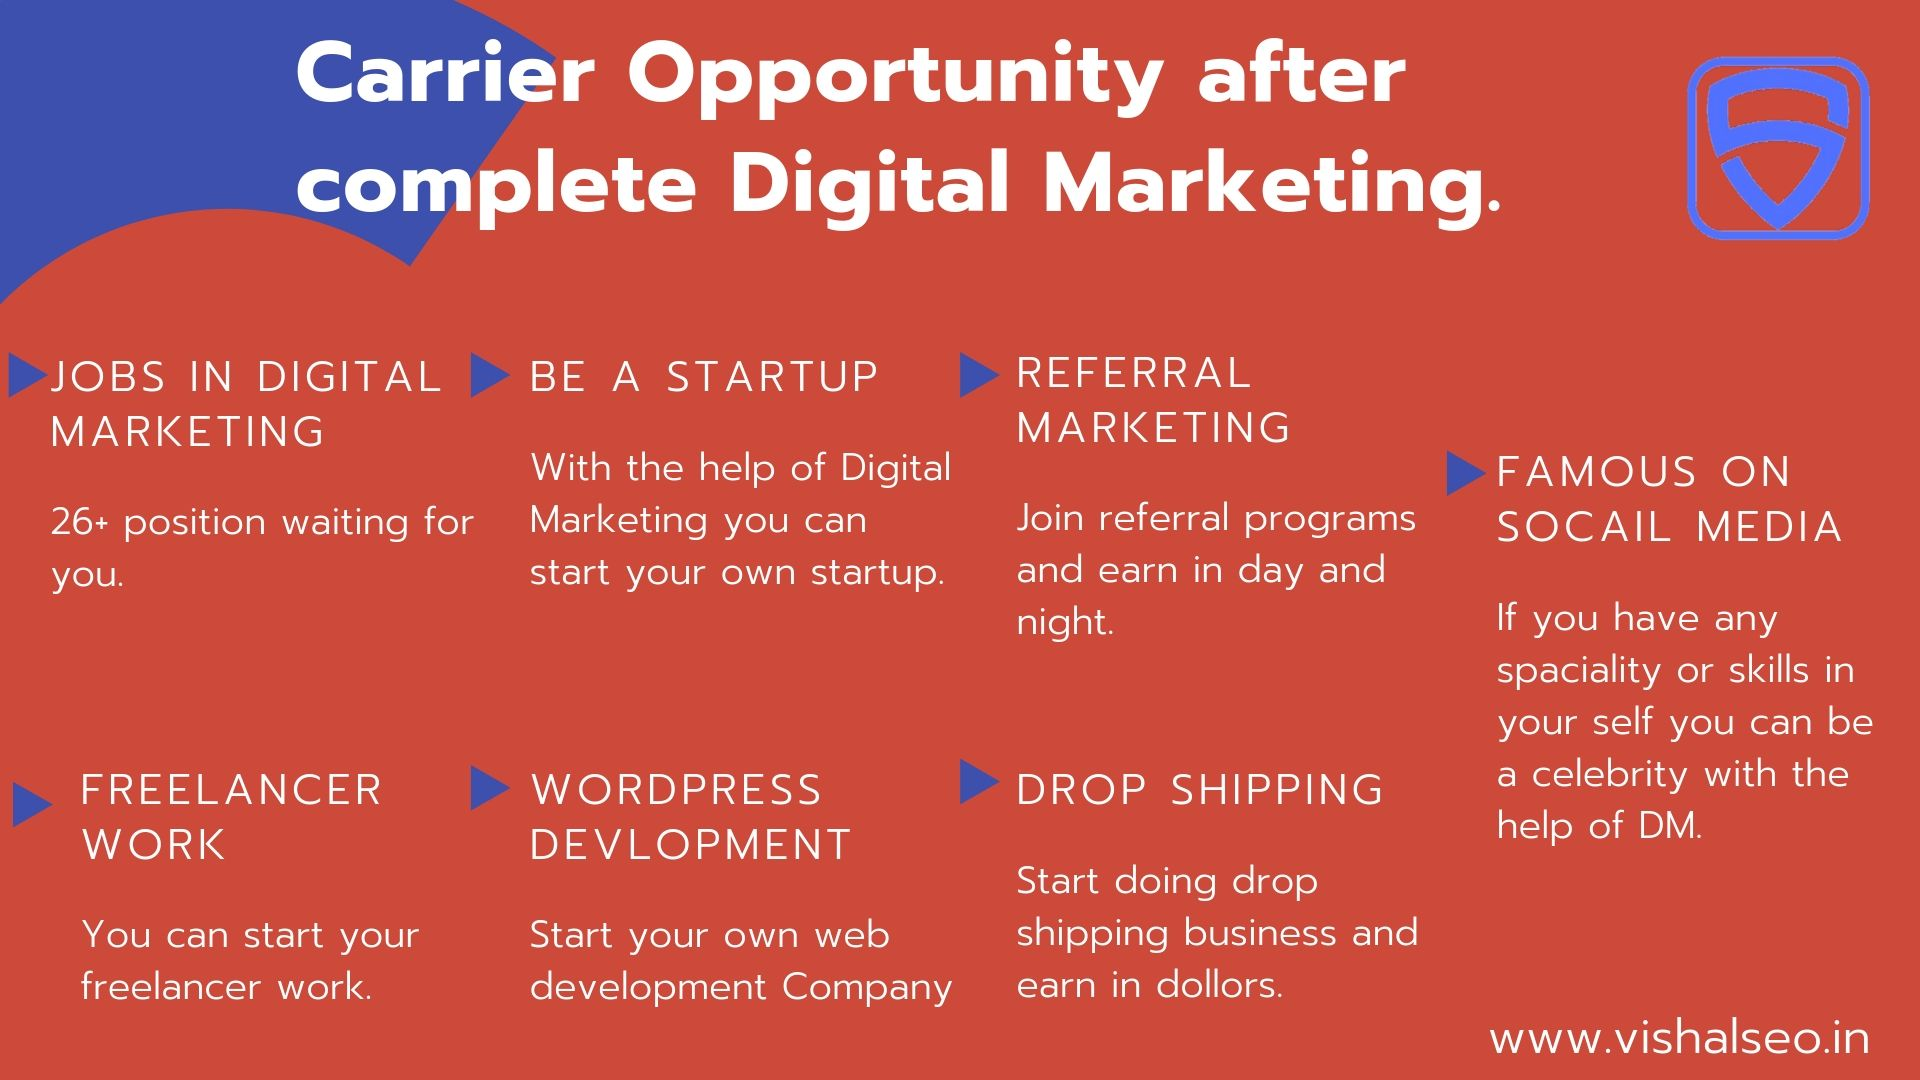 Carrier opportunity after complete digital marketing